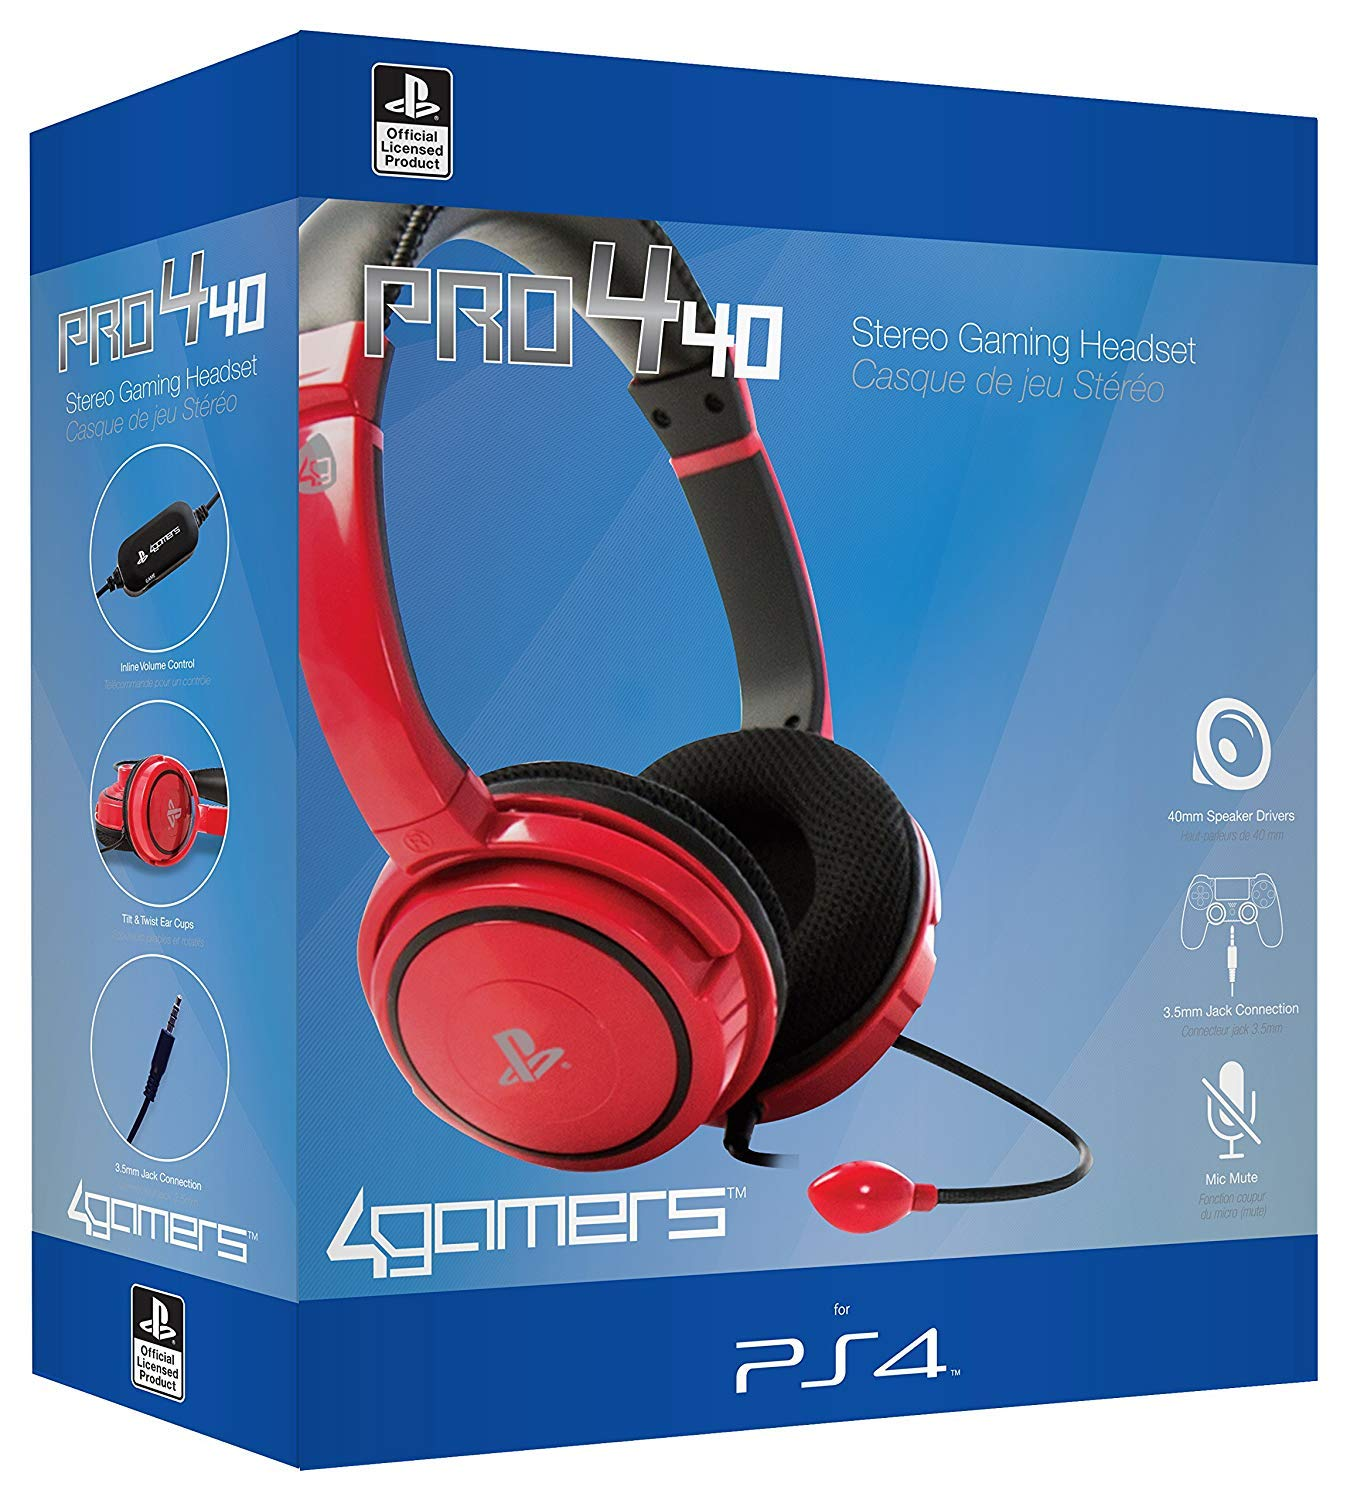 PRO4-10 Officially Licensed Stereo Gaming Headset - Red